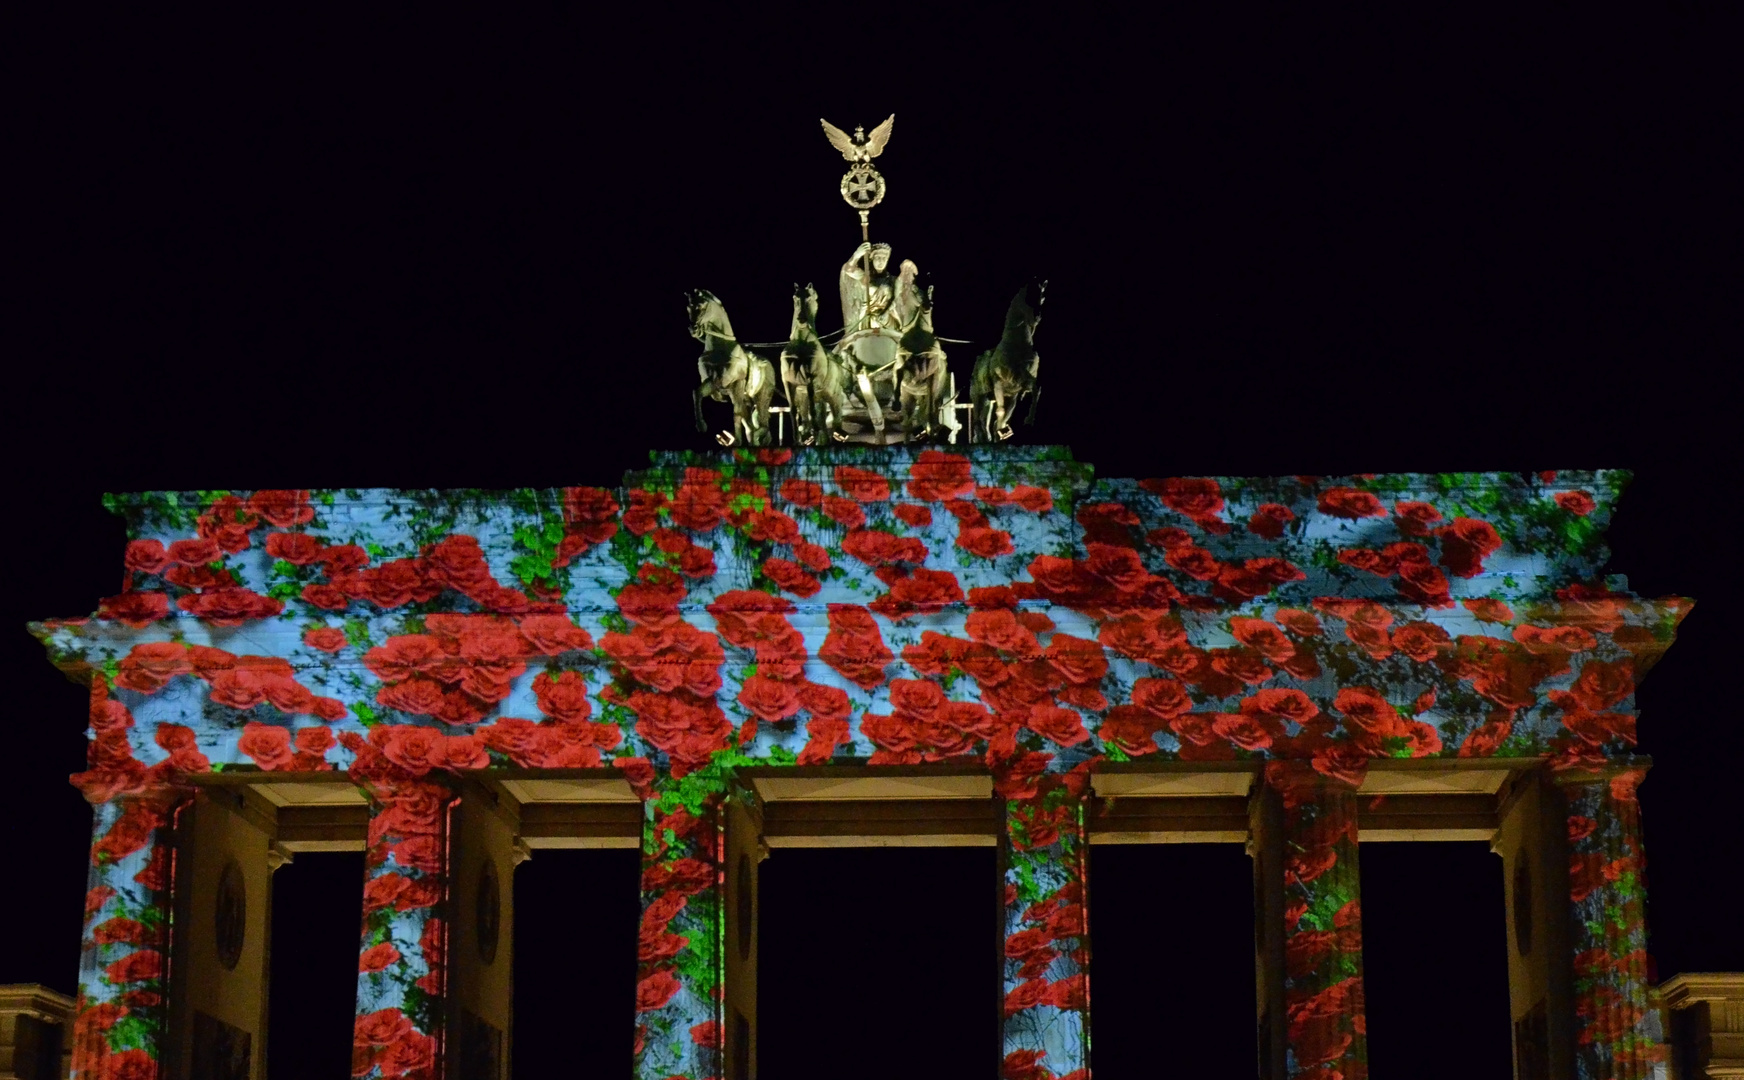 Festival of Lights Brandenburger Tor